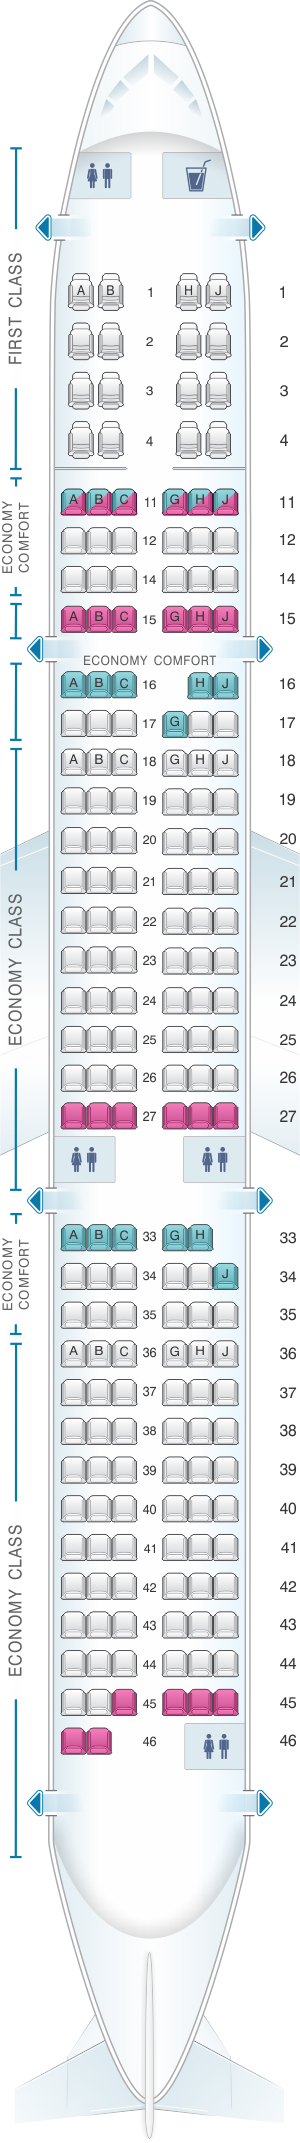 Seat map for Hawaiian Airlines Airbus A321neo